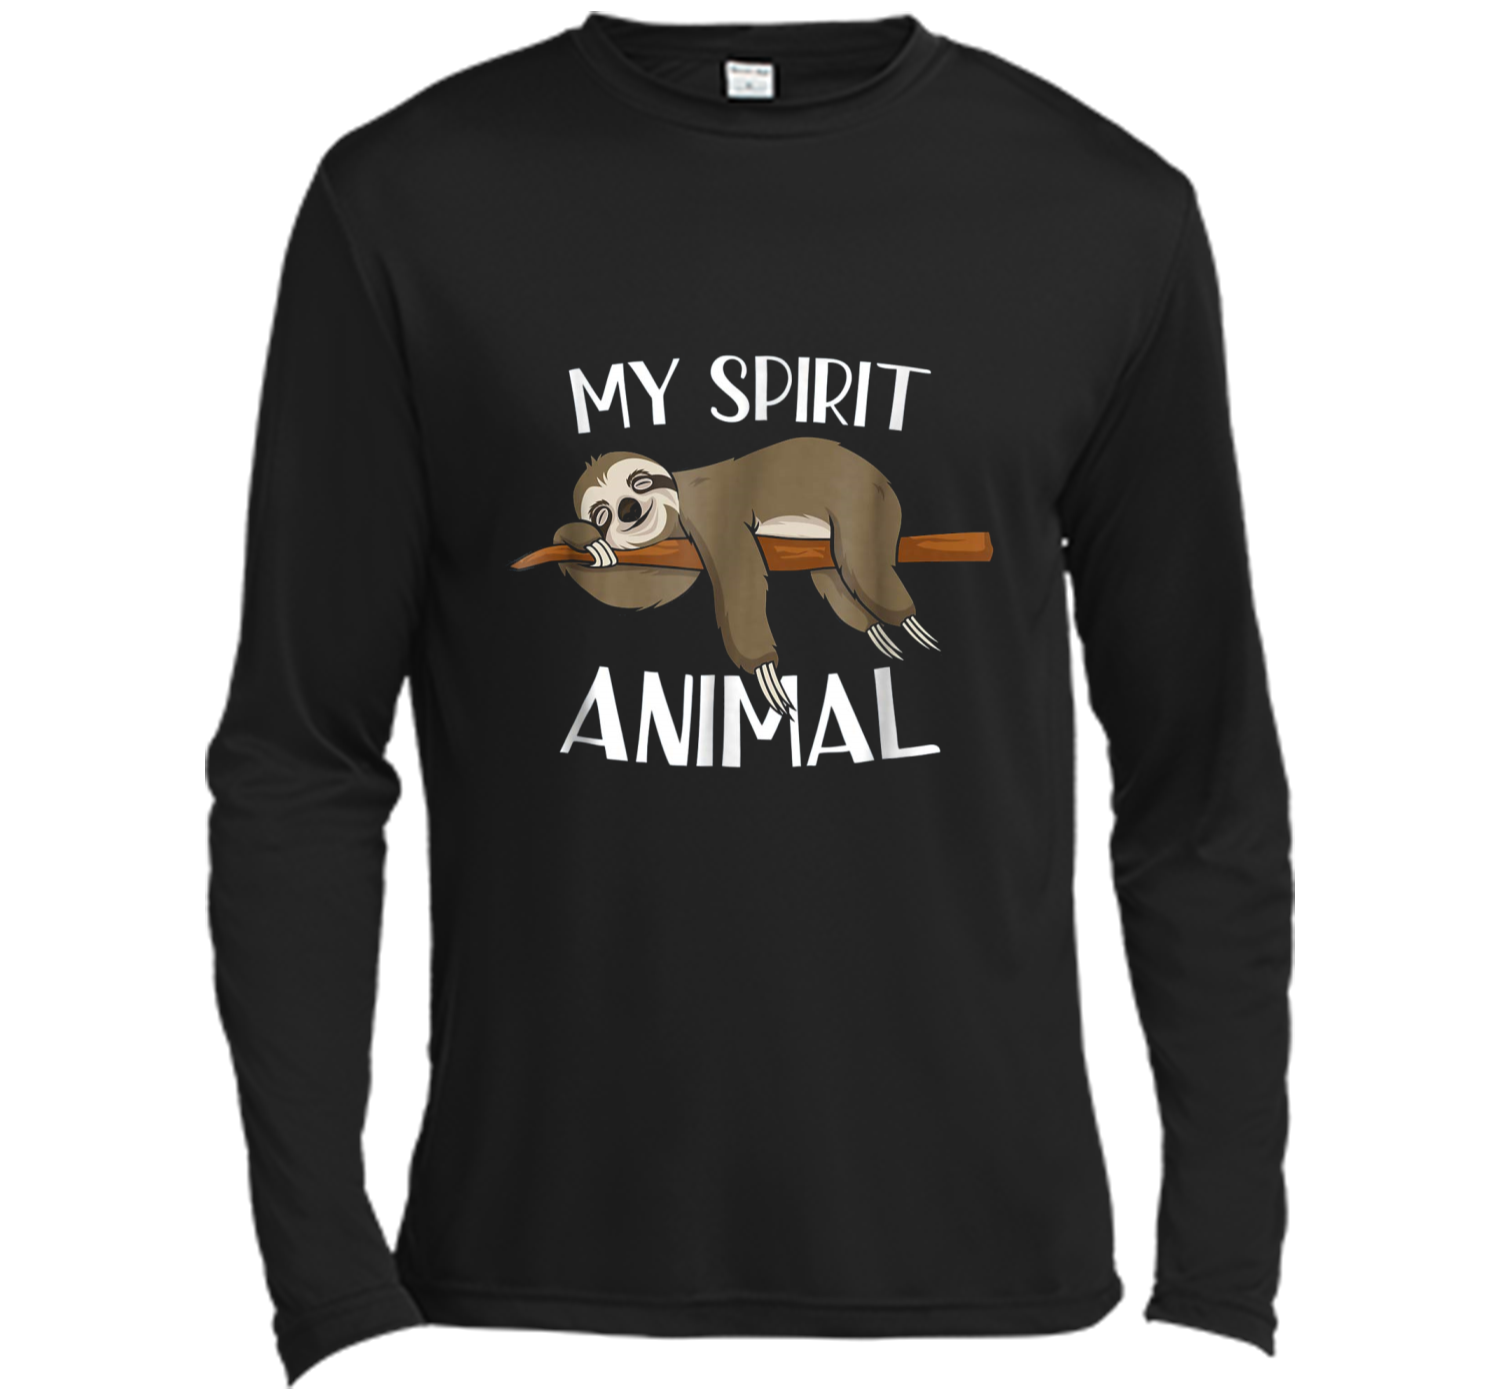 6c9256aa5 My Spirit Animal Funny Sloth Lazy Napping Gift Tee Long Sleeve Moisture  Absorbing Shirt